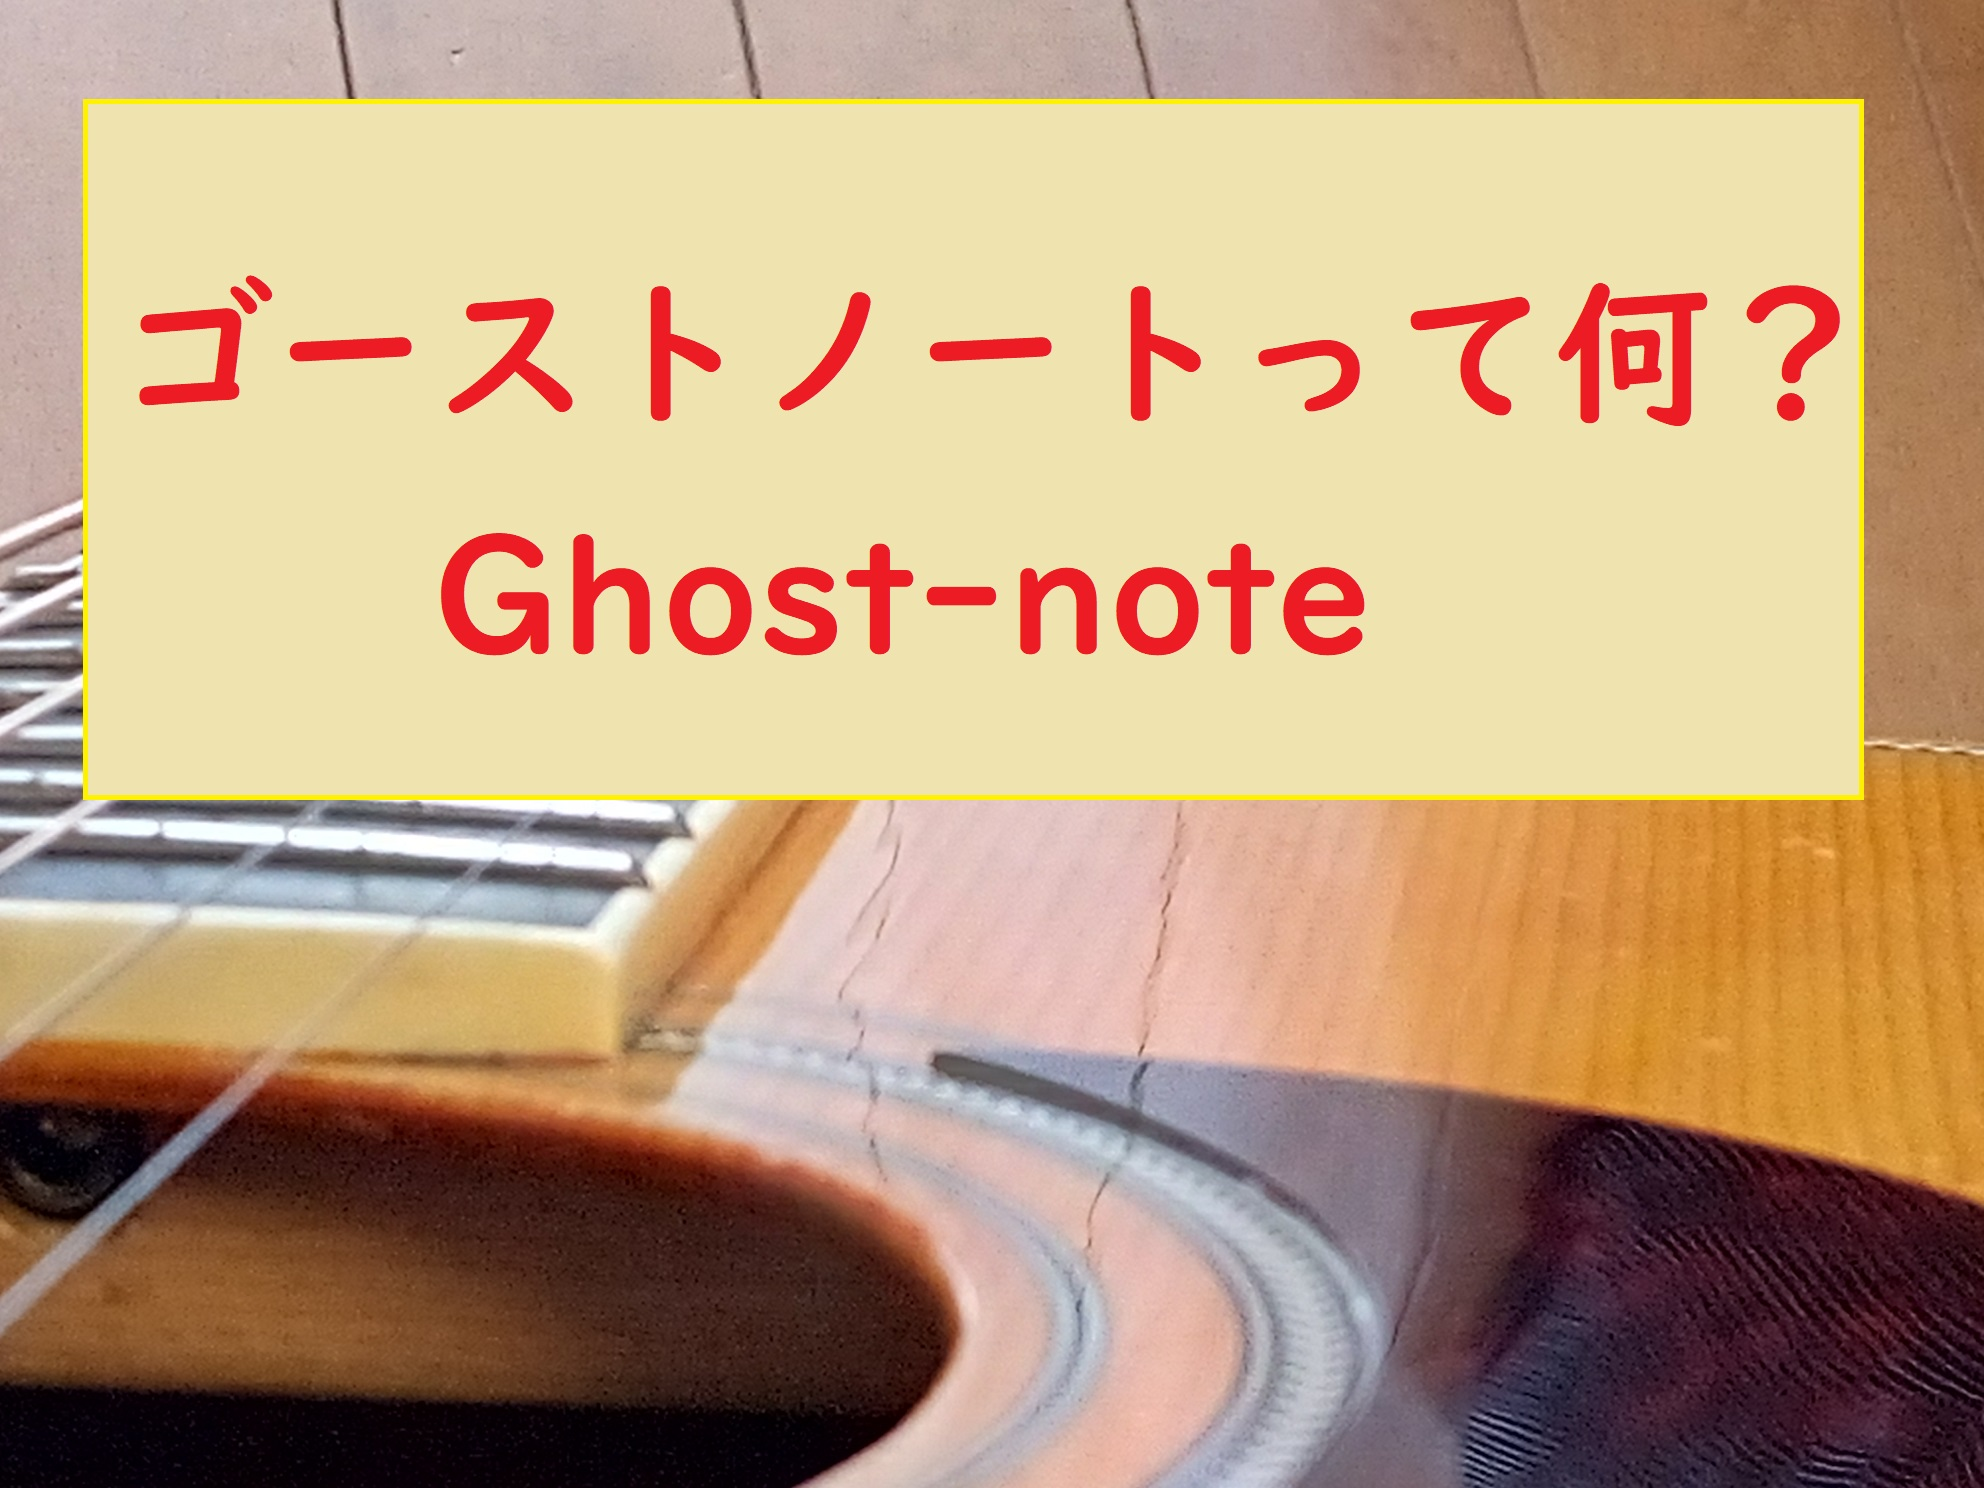 ghost-note-01